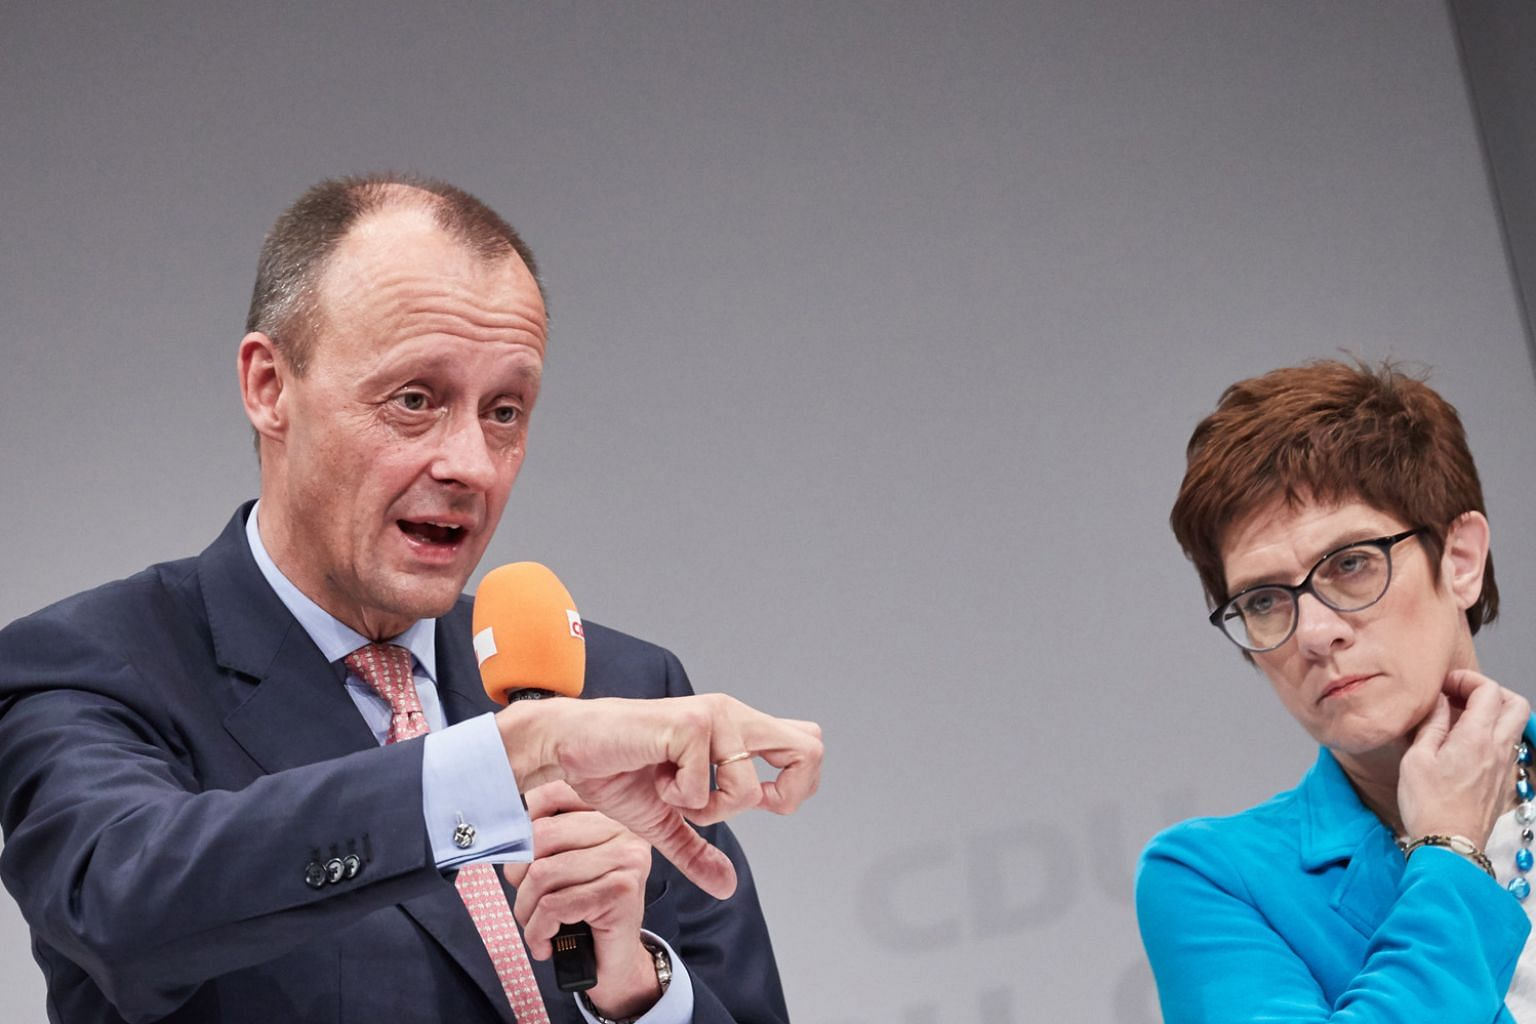 Mr Friedrich Merz and Ms Annegret Kramp-Karrenbauer are among contenders to succeed German Chancellor Angela Merkel as leader of the Christian Democratic Union. Mr Merz has questioned if an individual's right to seek asylum in Germany still fits with